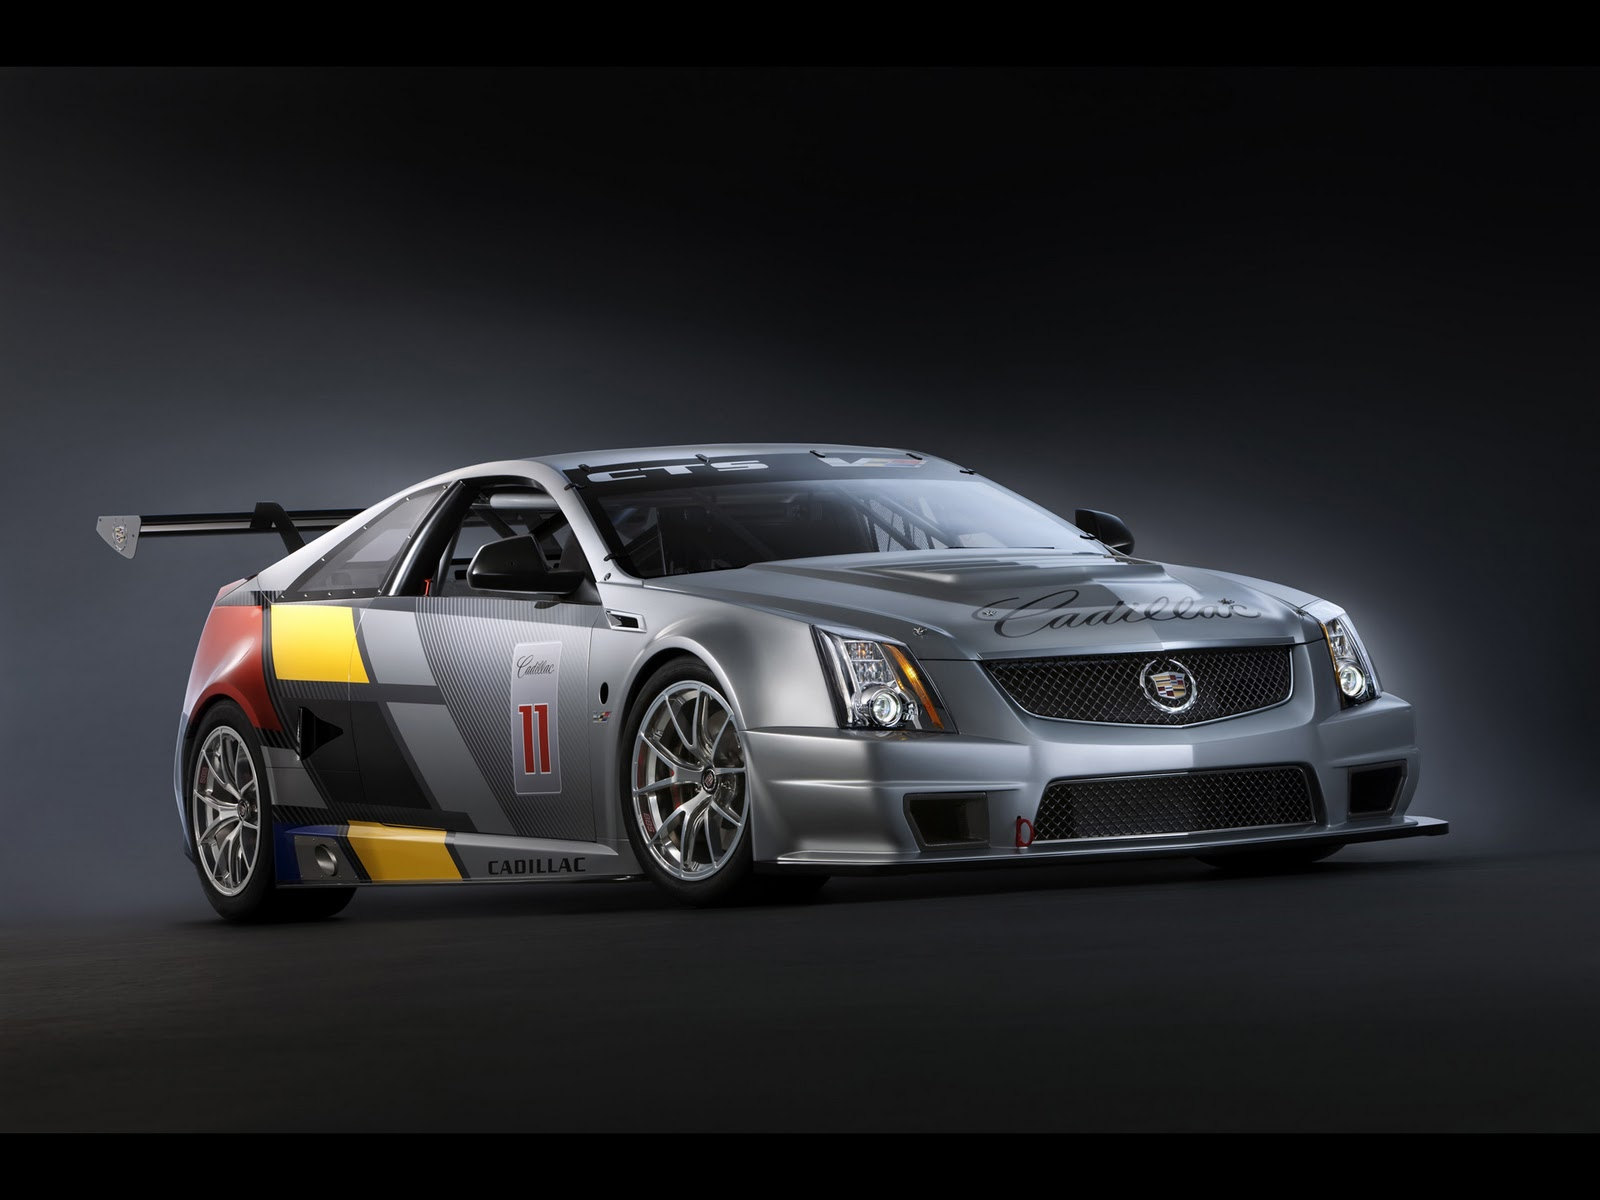 cars hd wallpapers 2011 cadillac cts v coupe racecar. Black Bedroom Furniture Sets. Home Design Ideas